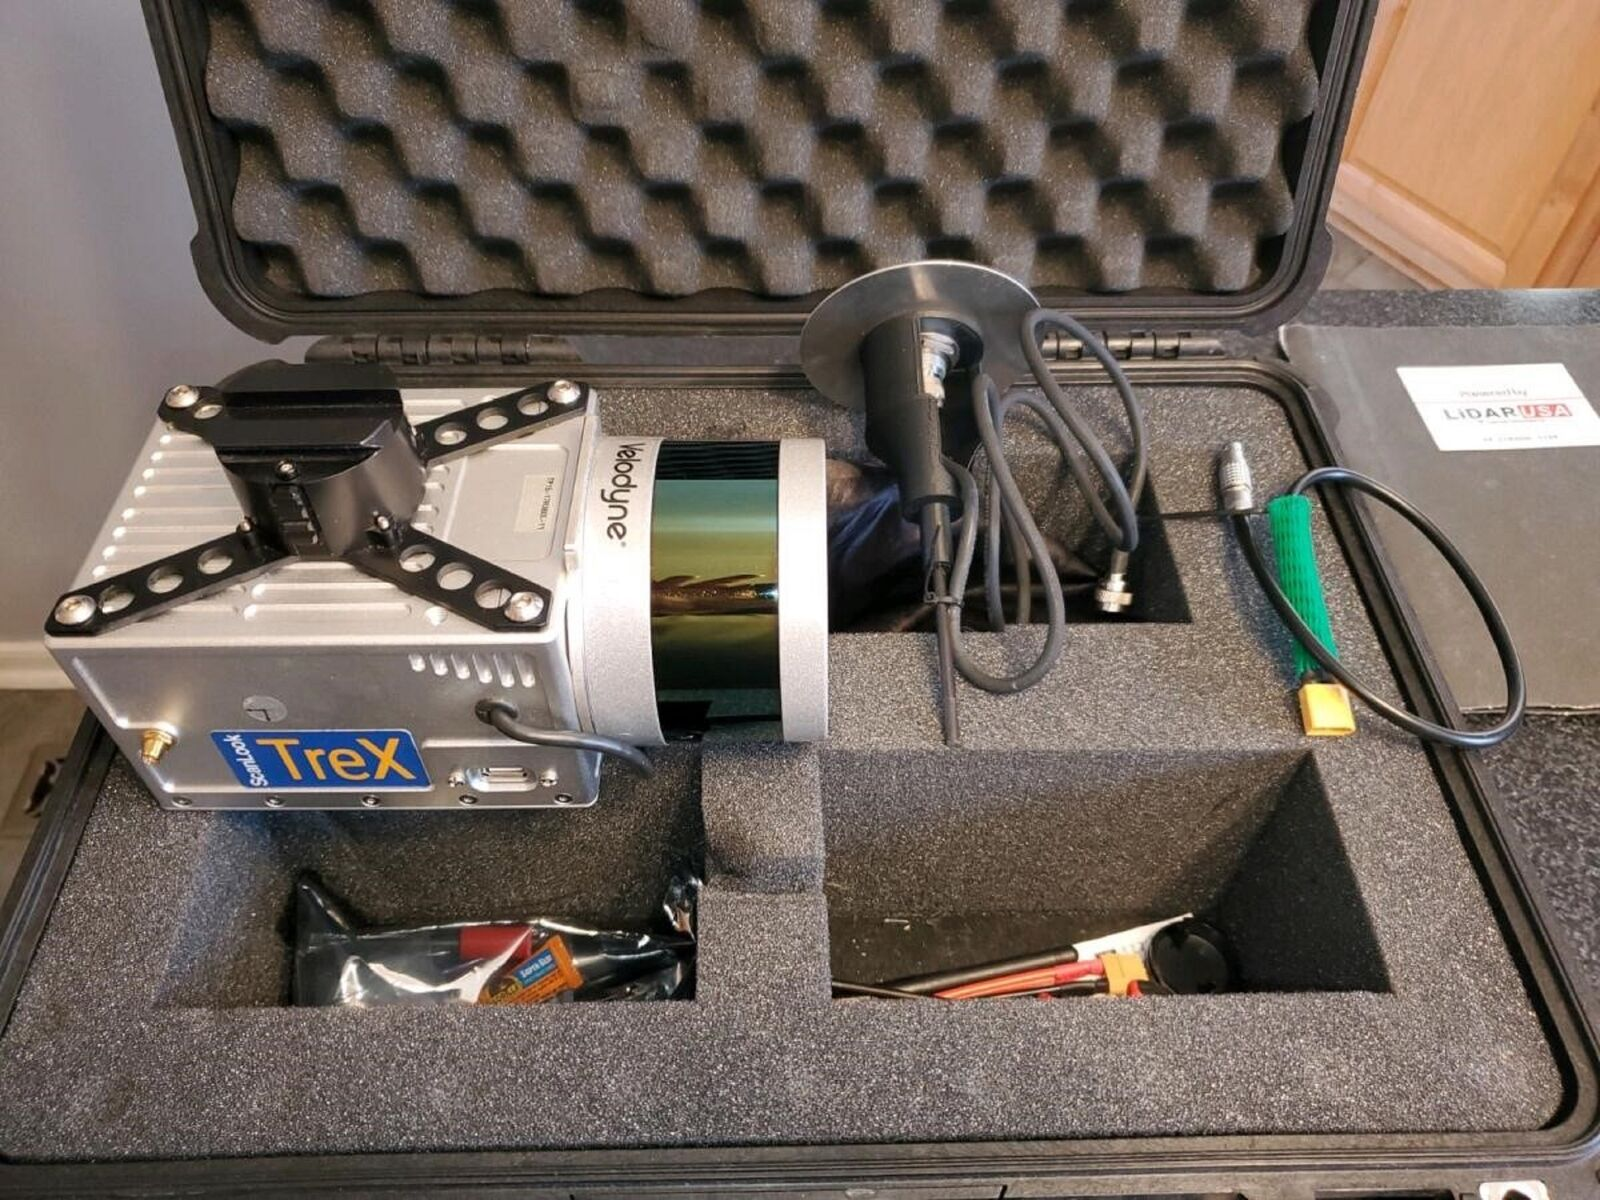 Lidar Scanner and Drone